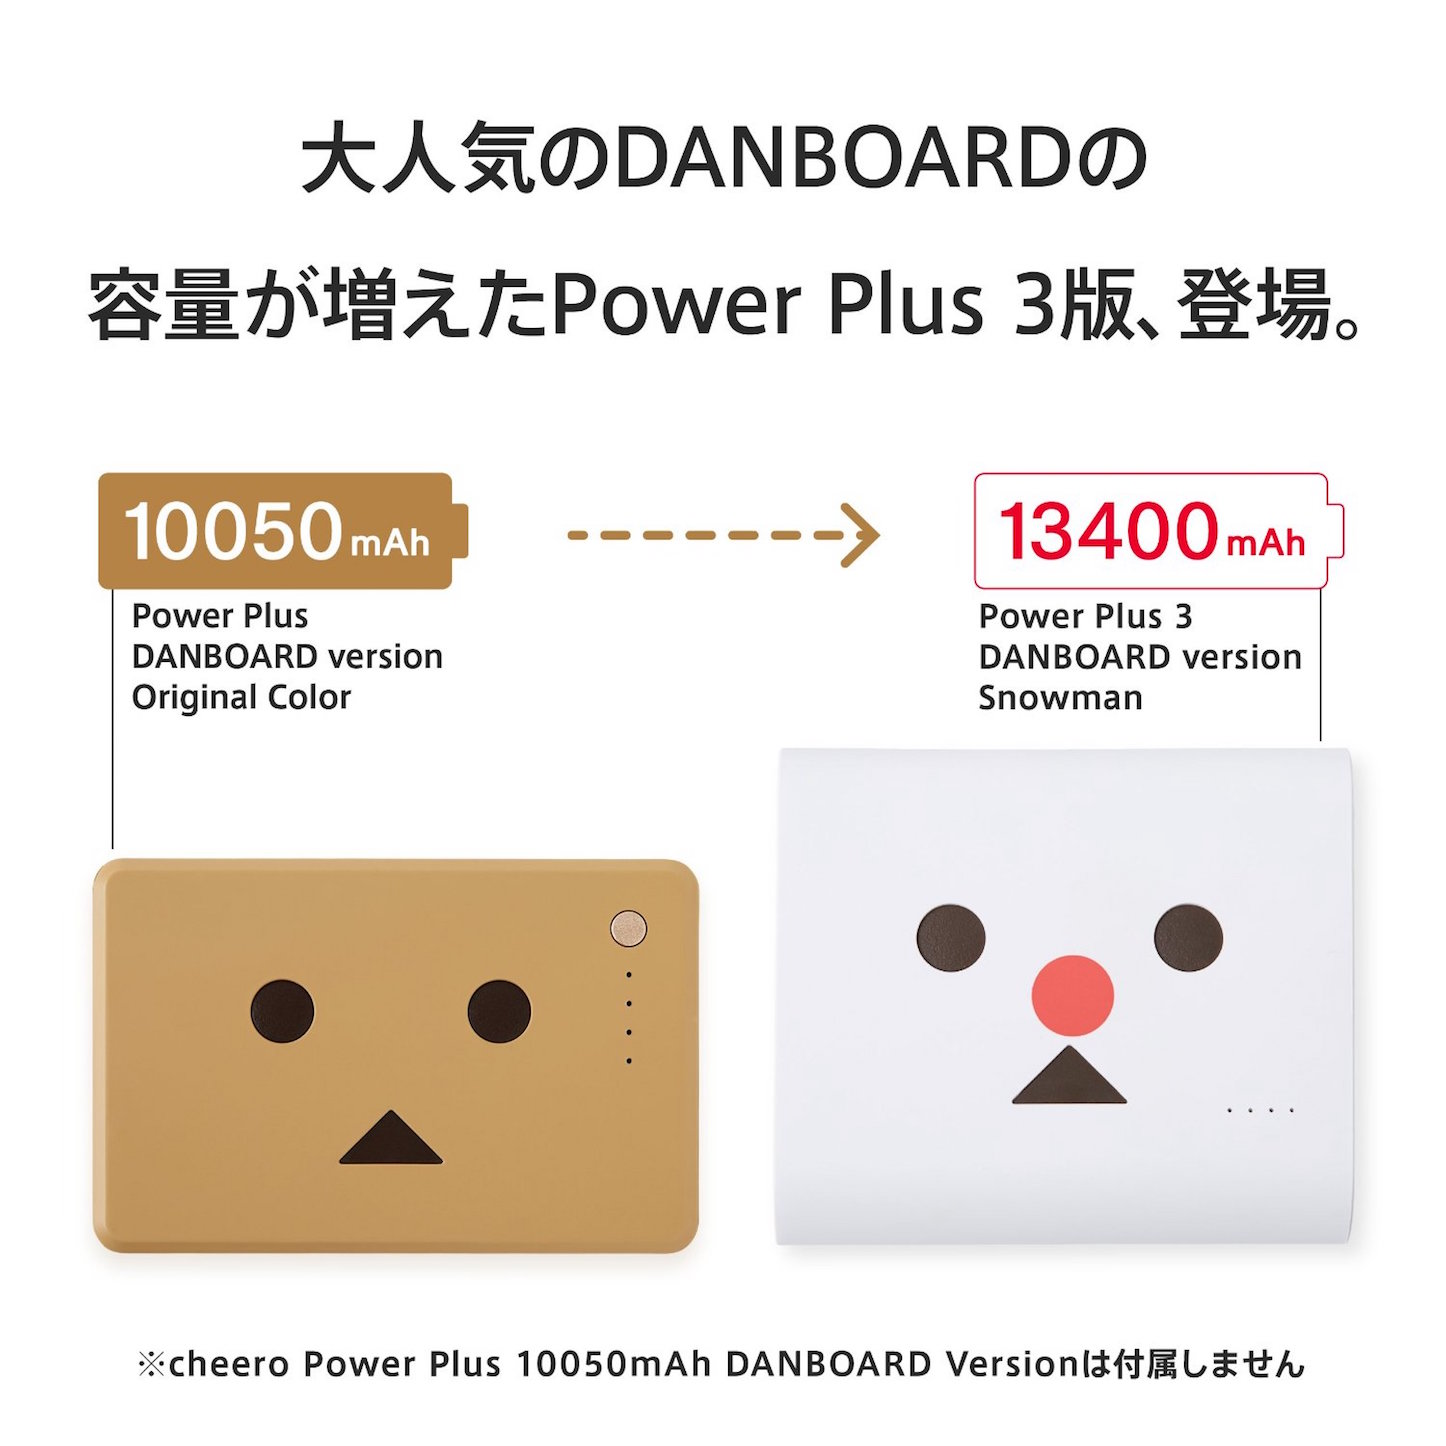 Cheero-Power-Plus-3-Danboard-Version-2.jpg